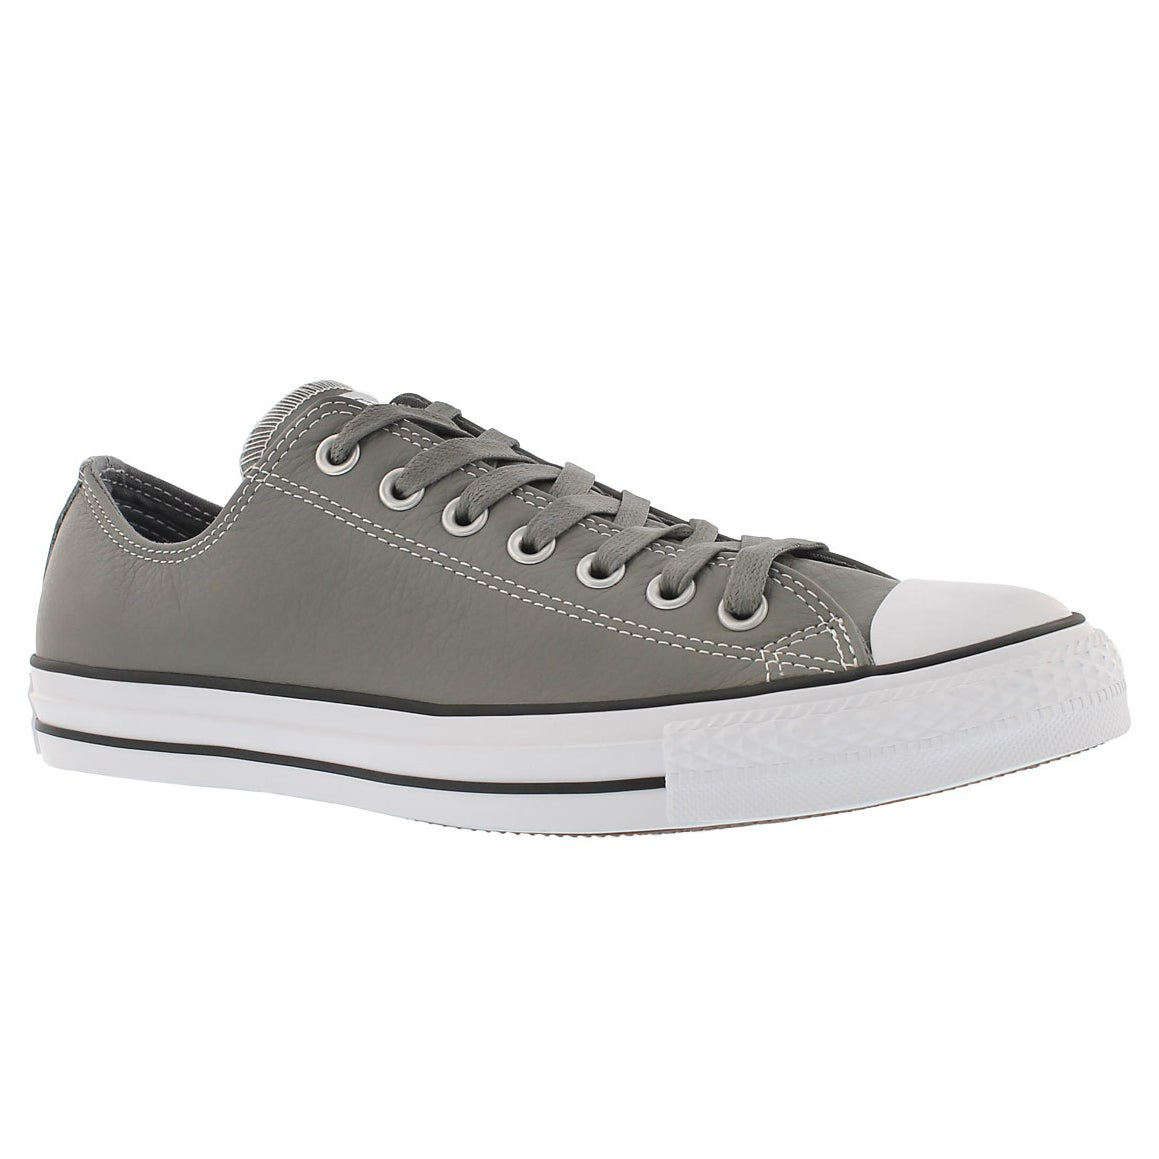 Espadrilles CT ALL STAR LEATHER, gris, hommes